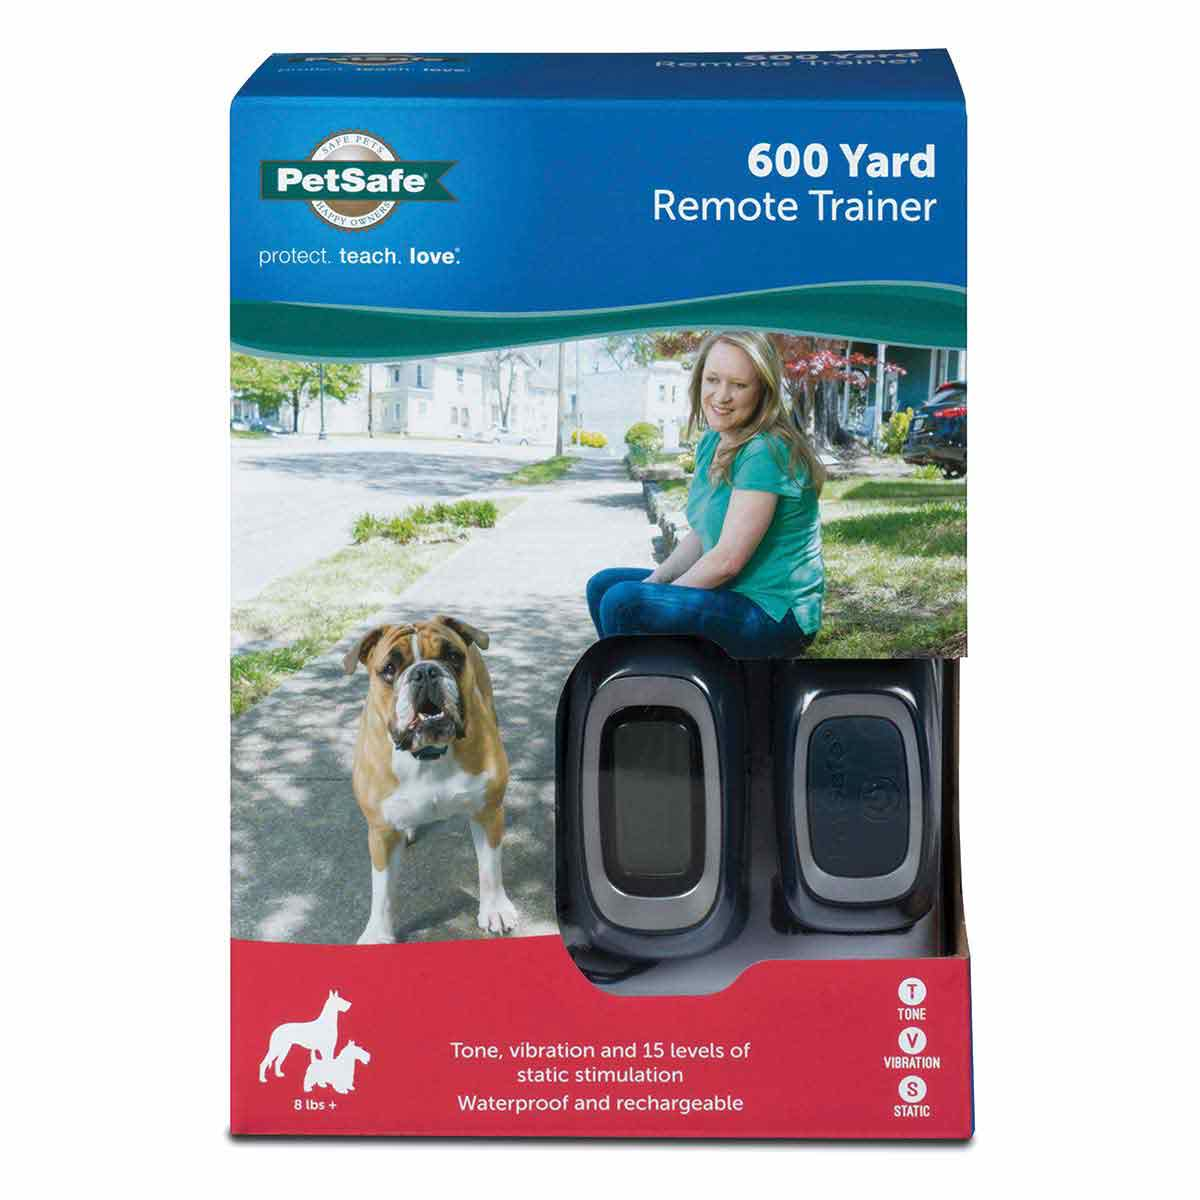 600 Yard PetSafe Yard Remote Trainer Pet Collar available at Ryan's Pet Supplies